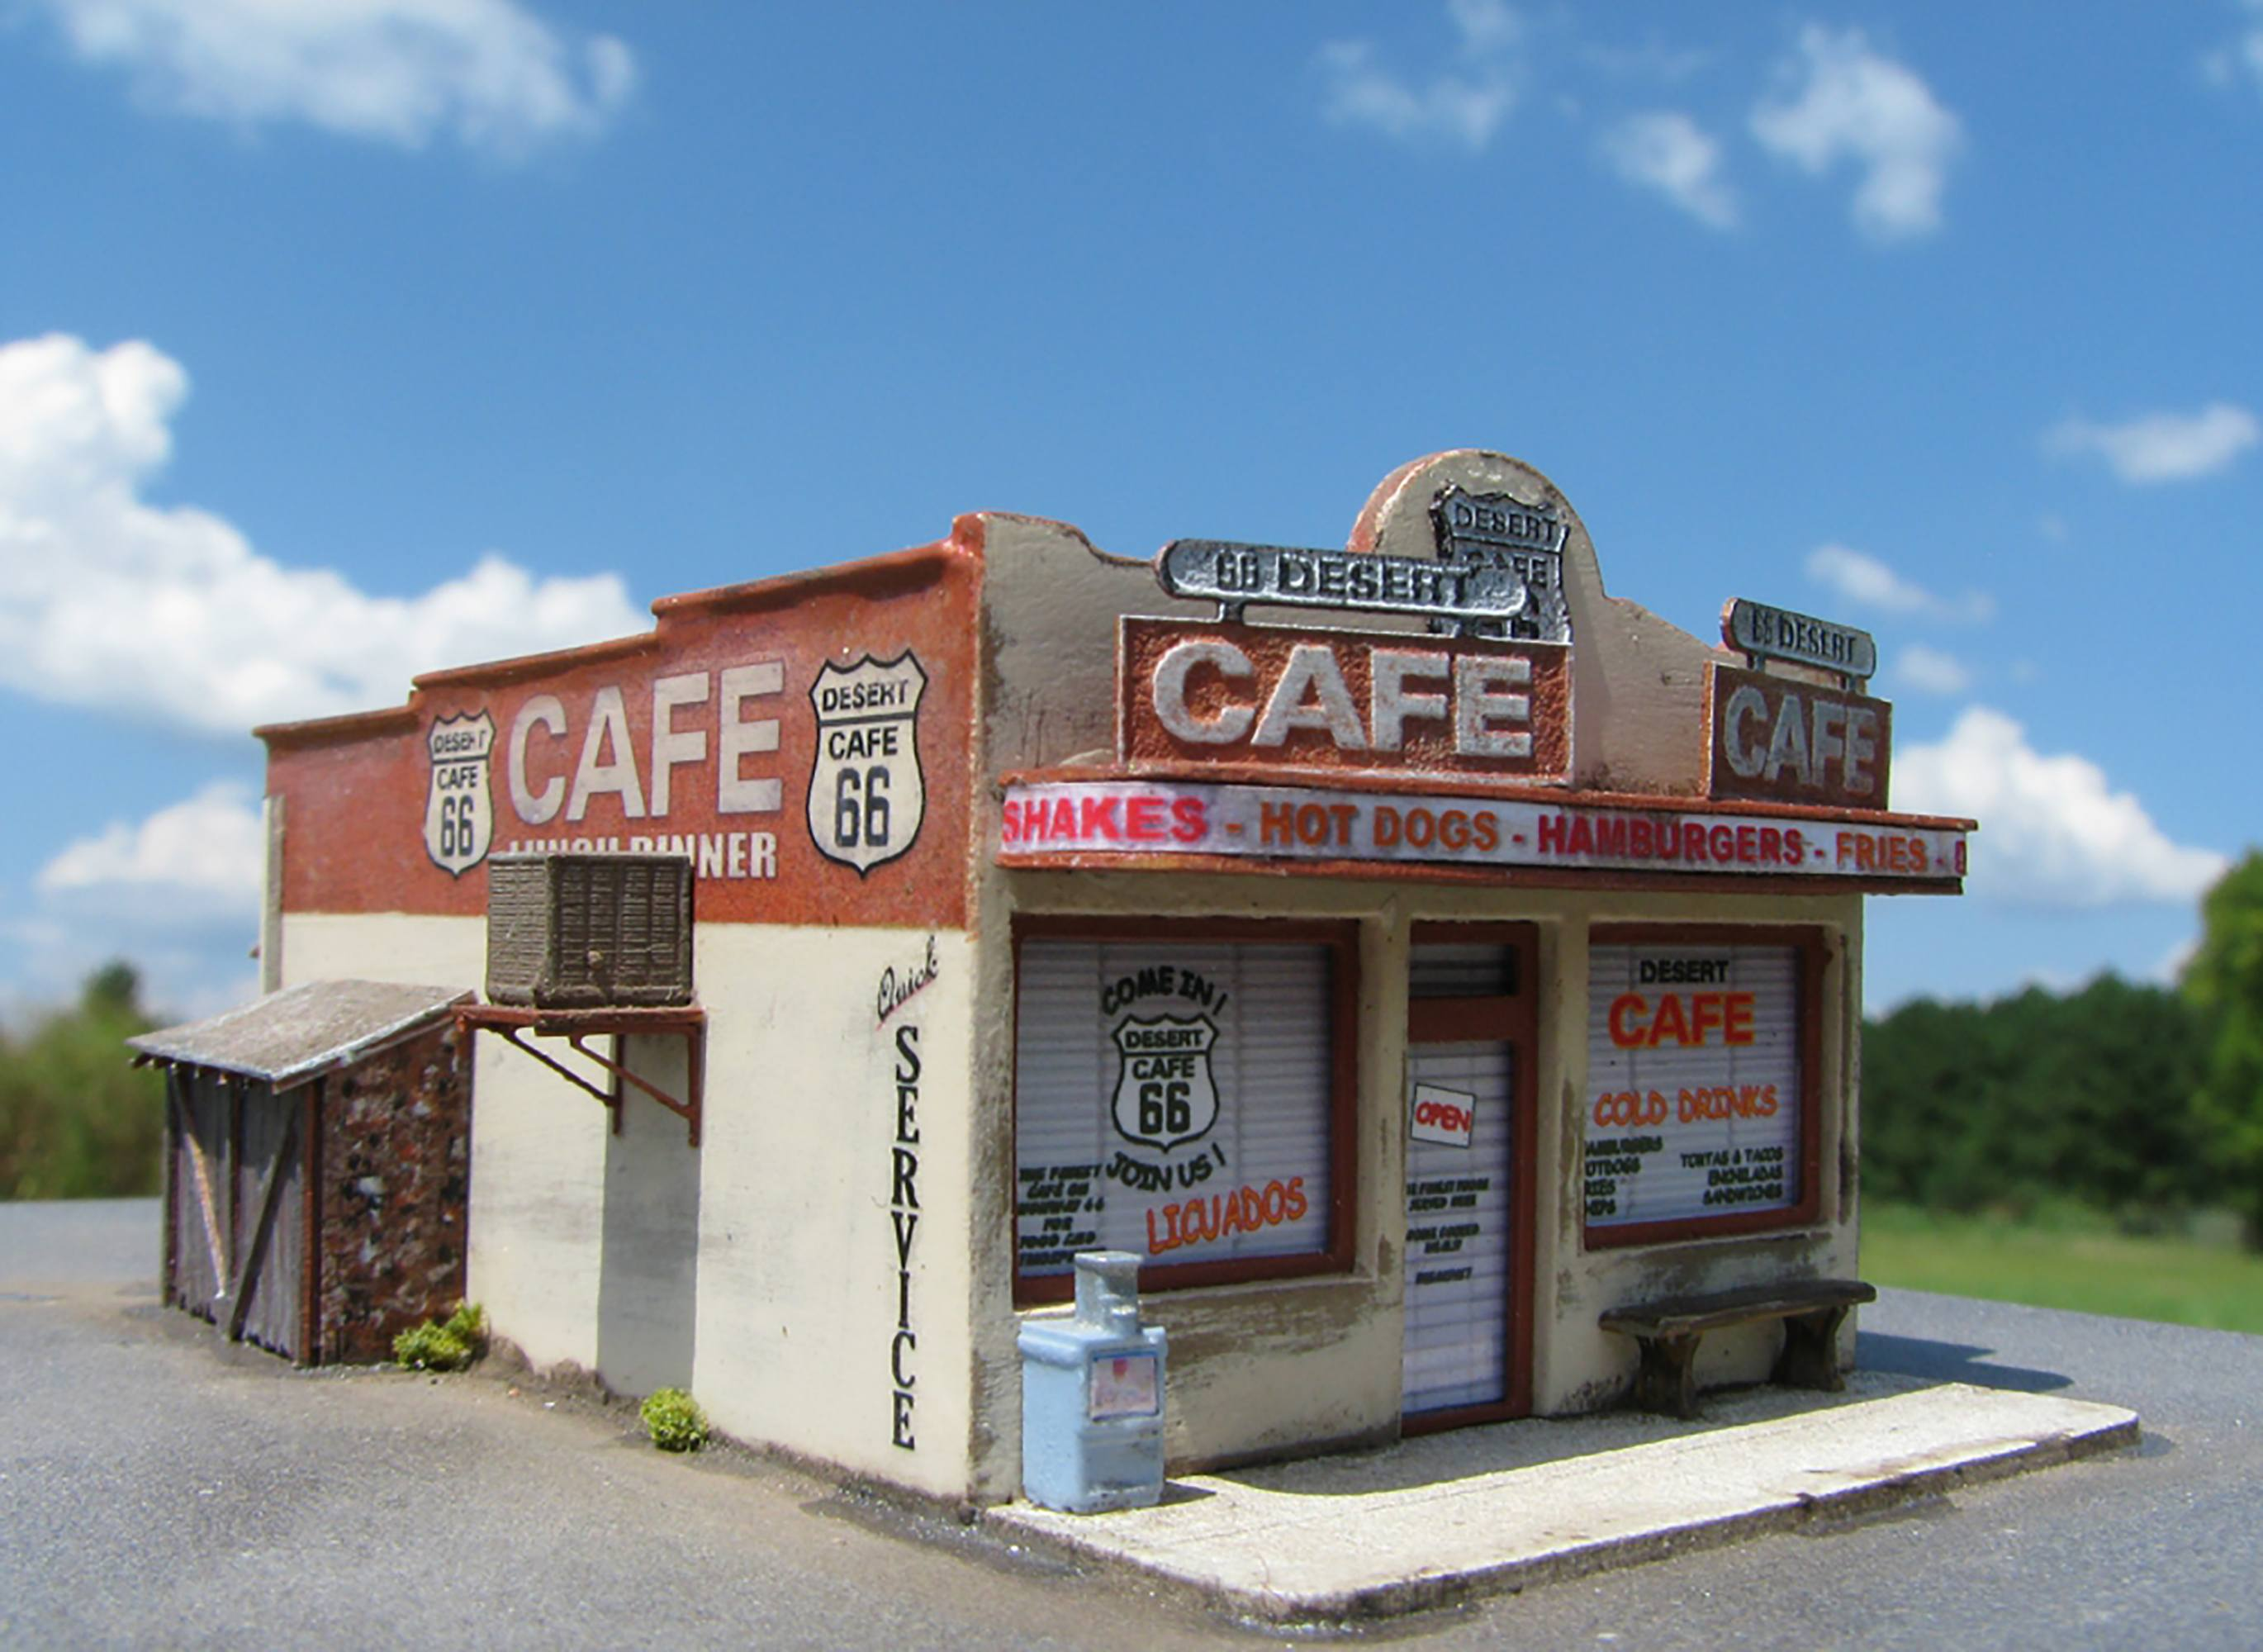 Café model railroading